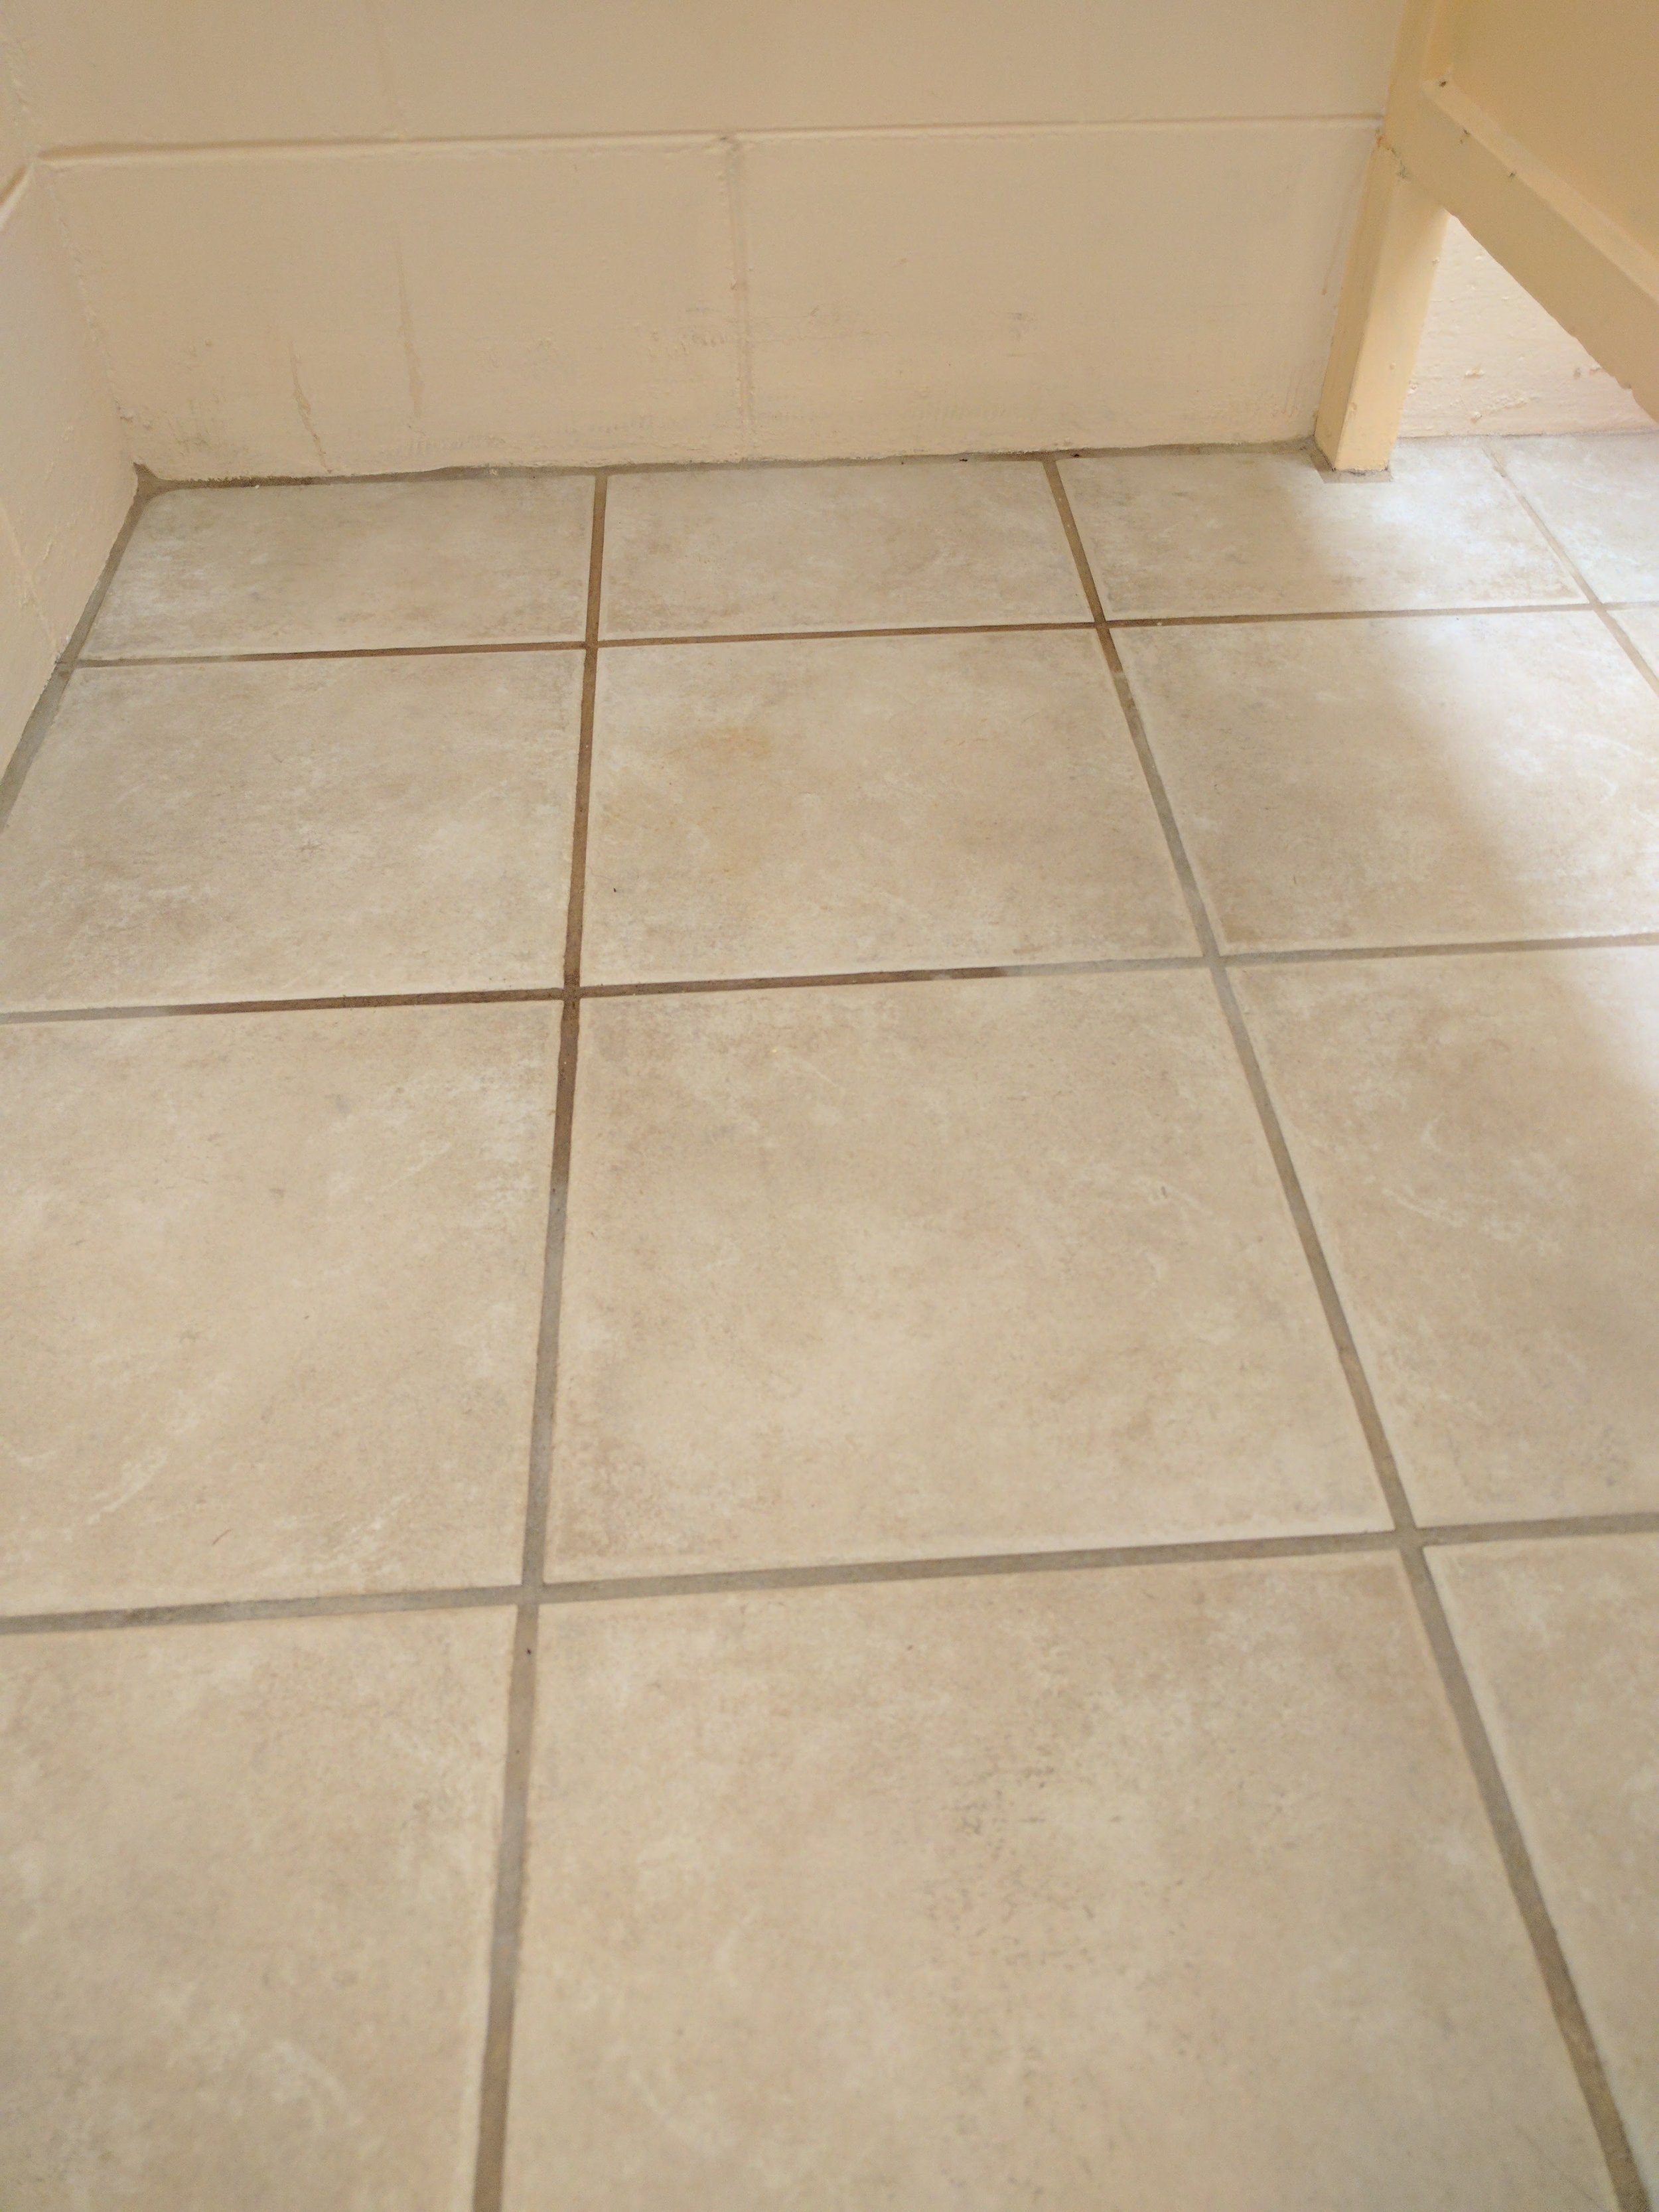 Before picture of dirty bathroom floor.